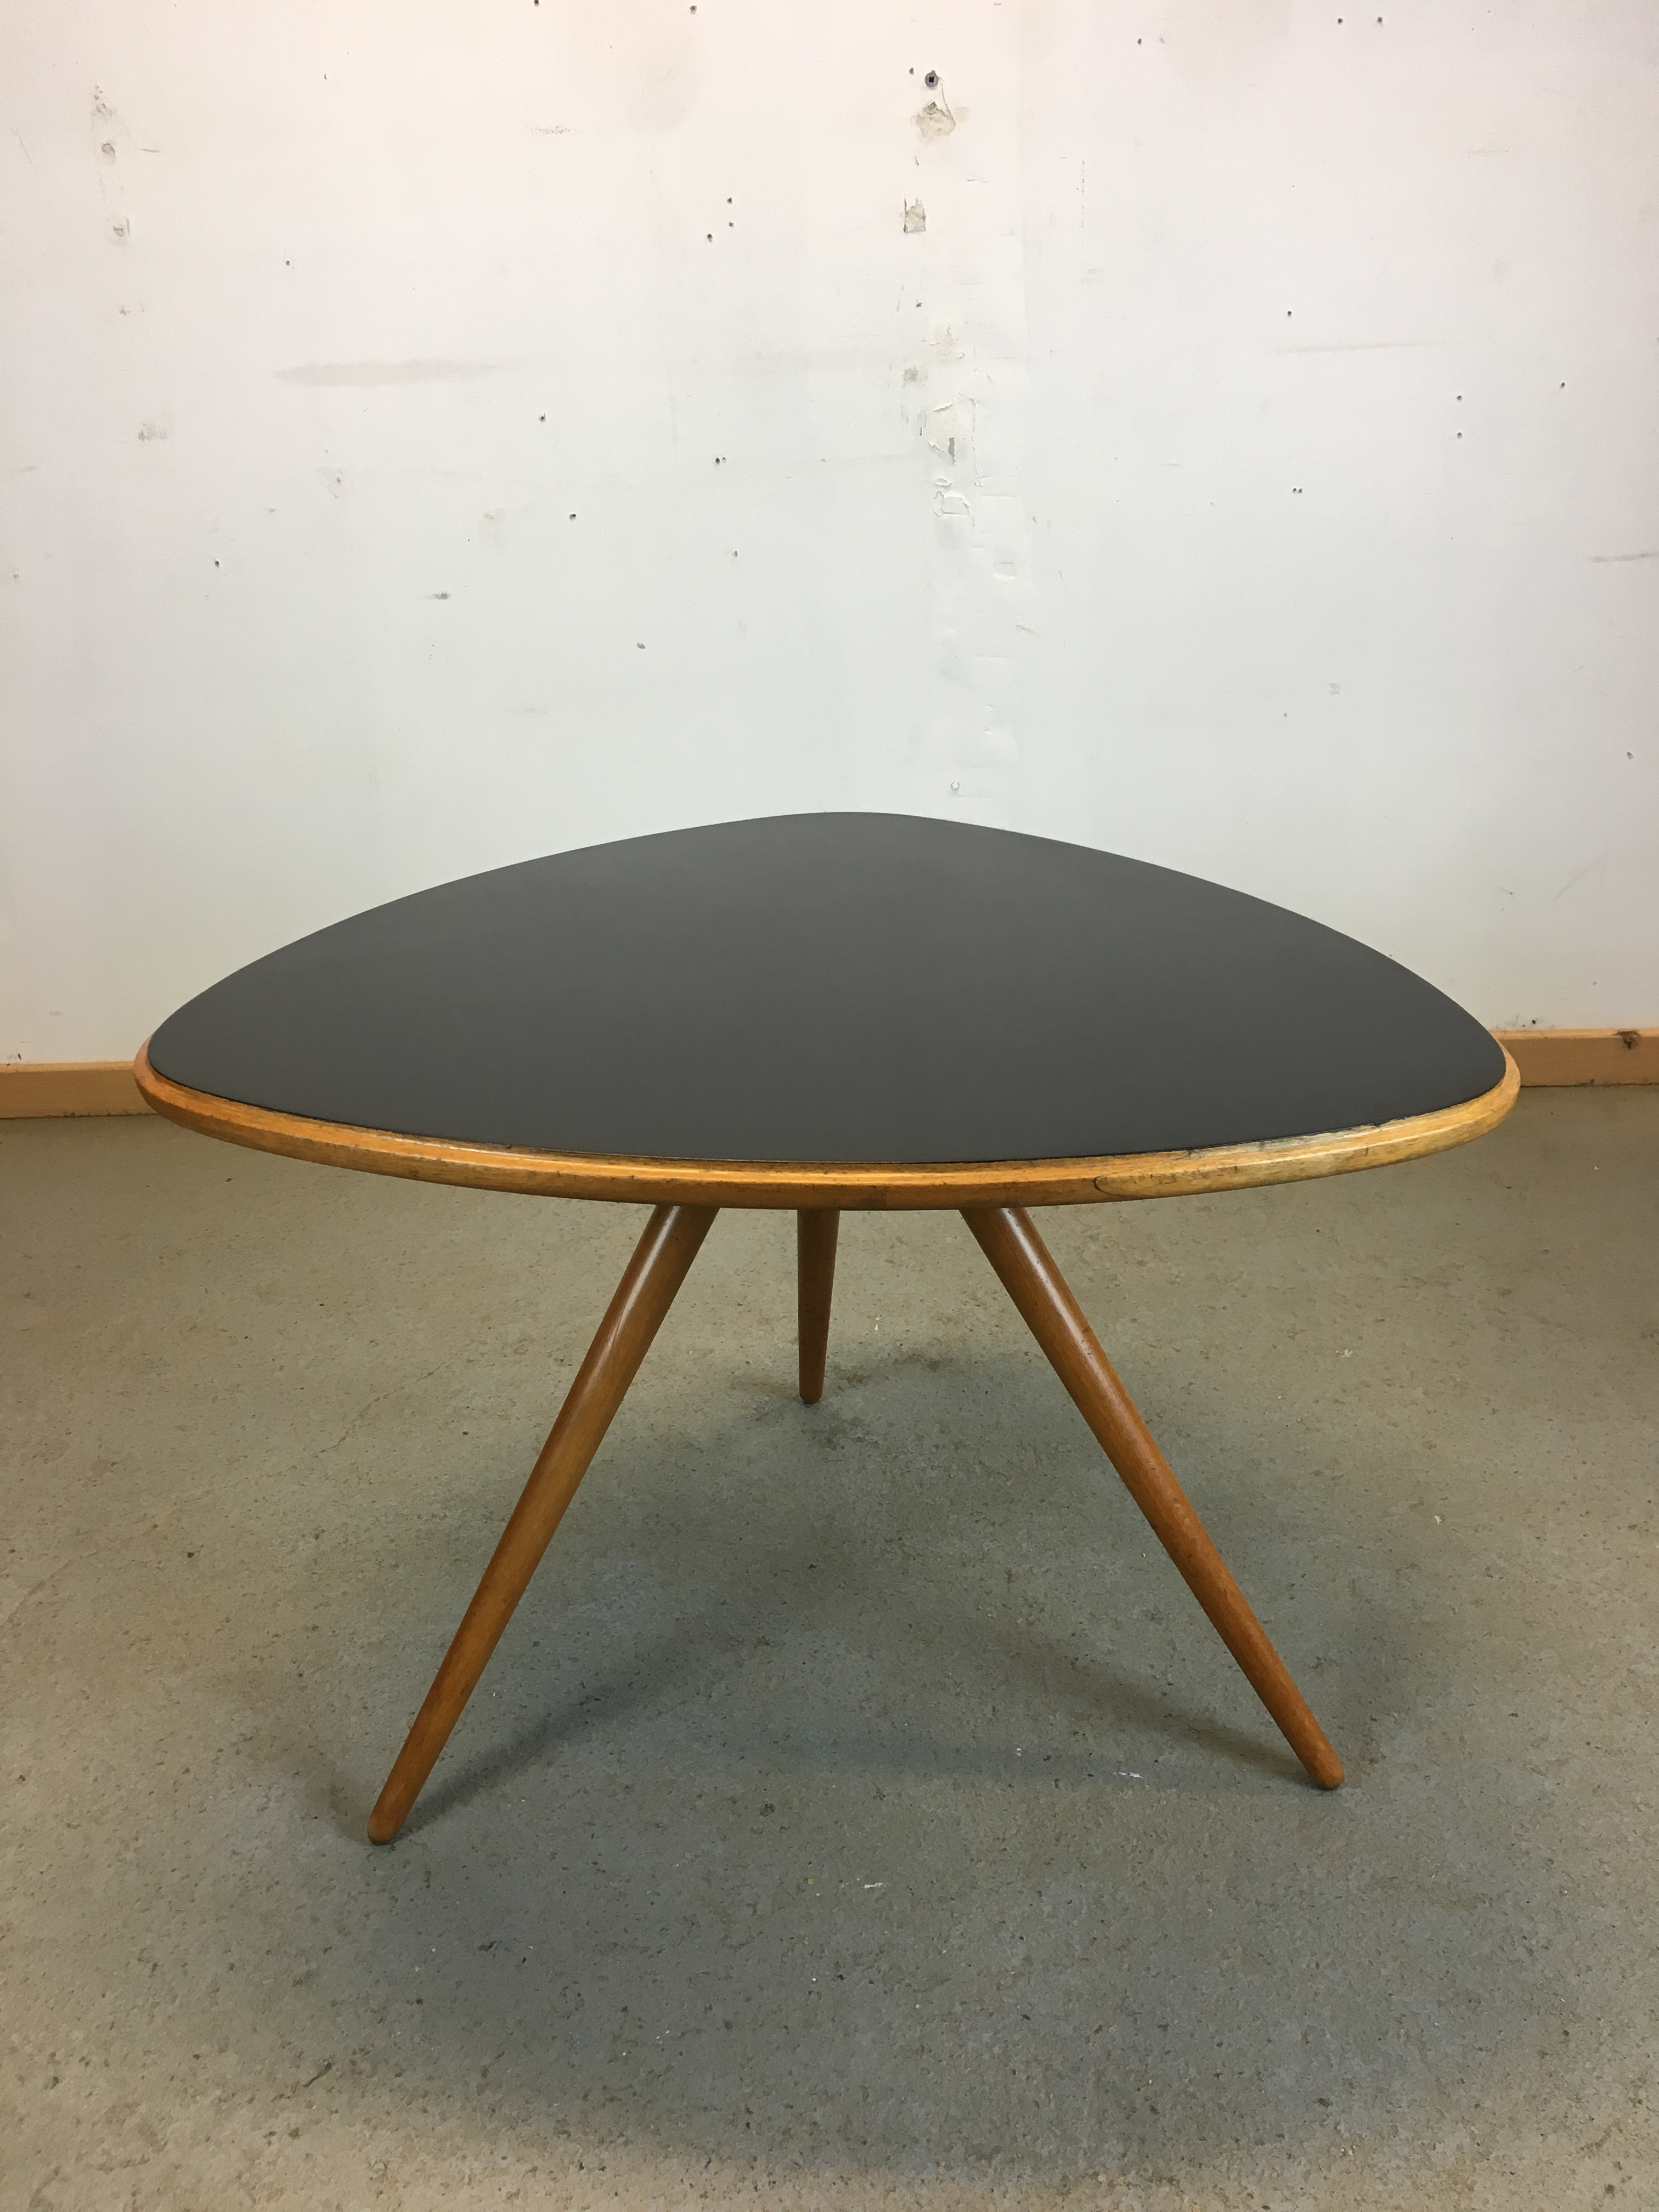 Table Année 50 Table Basse Forme Libre Année 50 Horgen Glarus Coffee Table Max